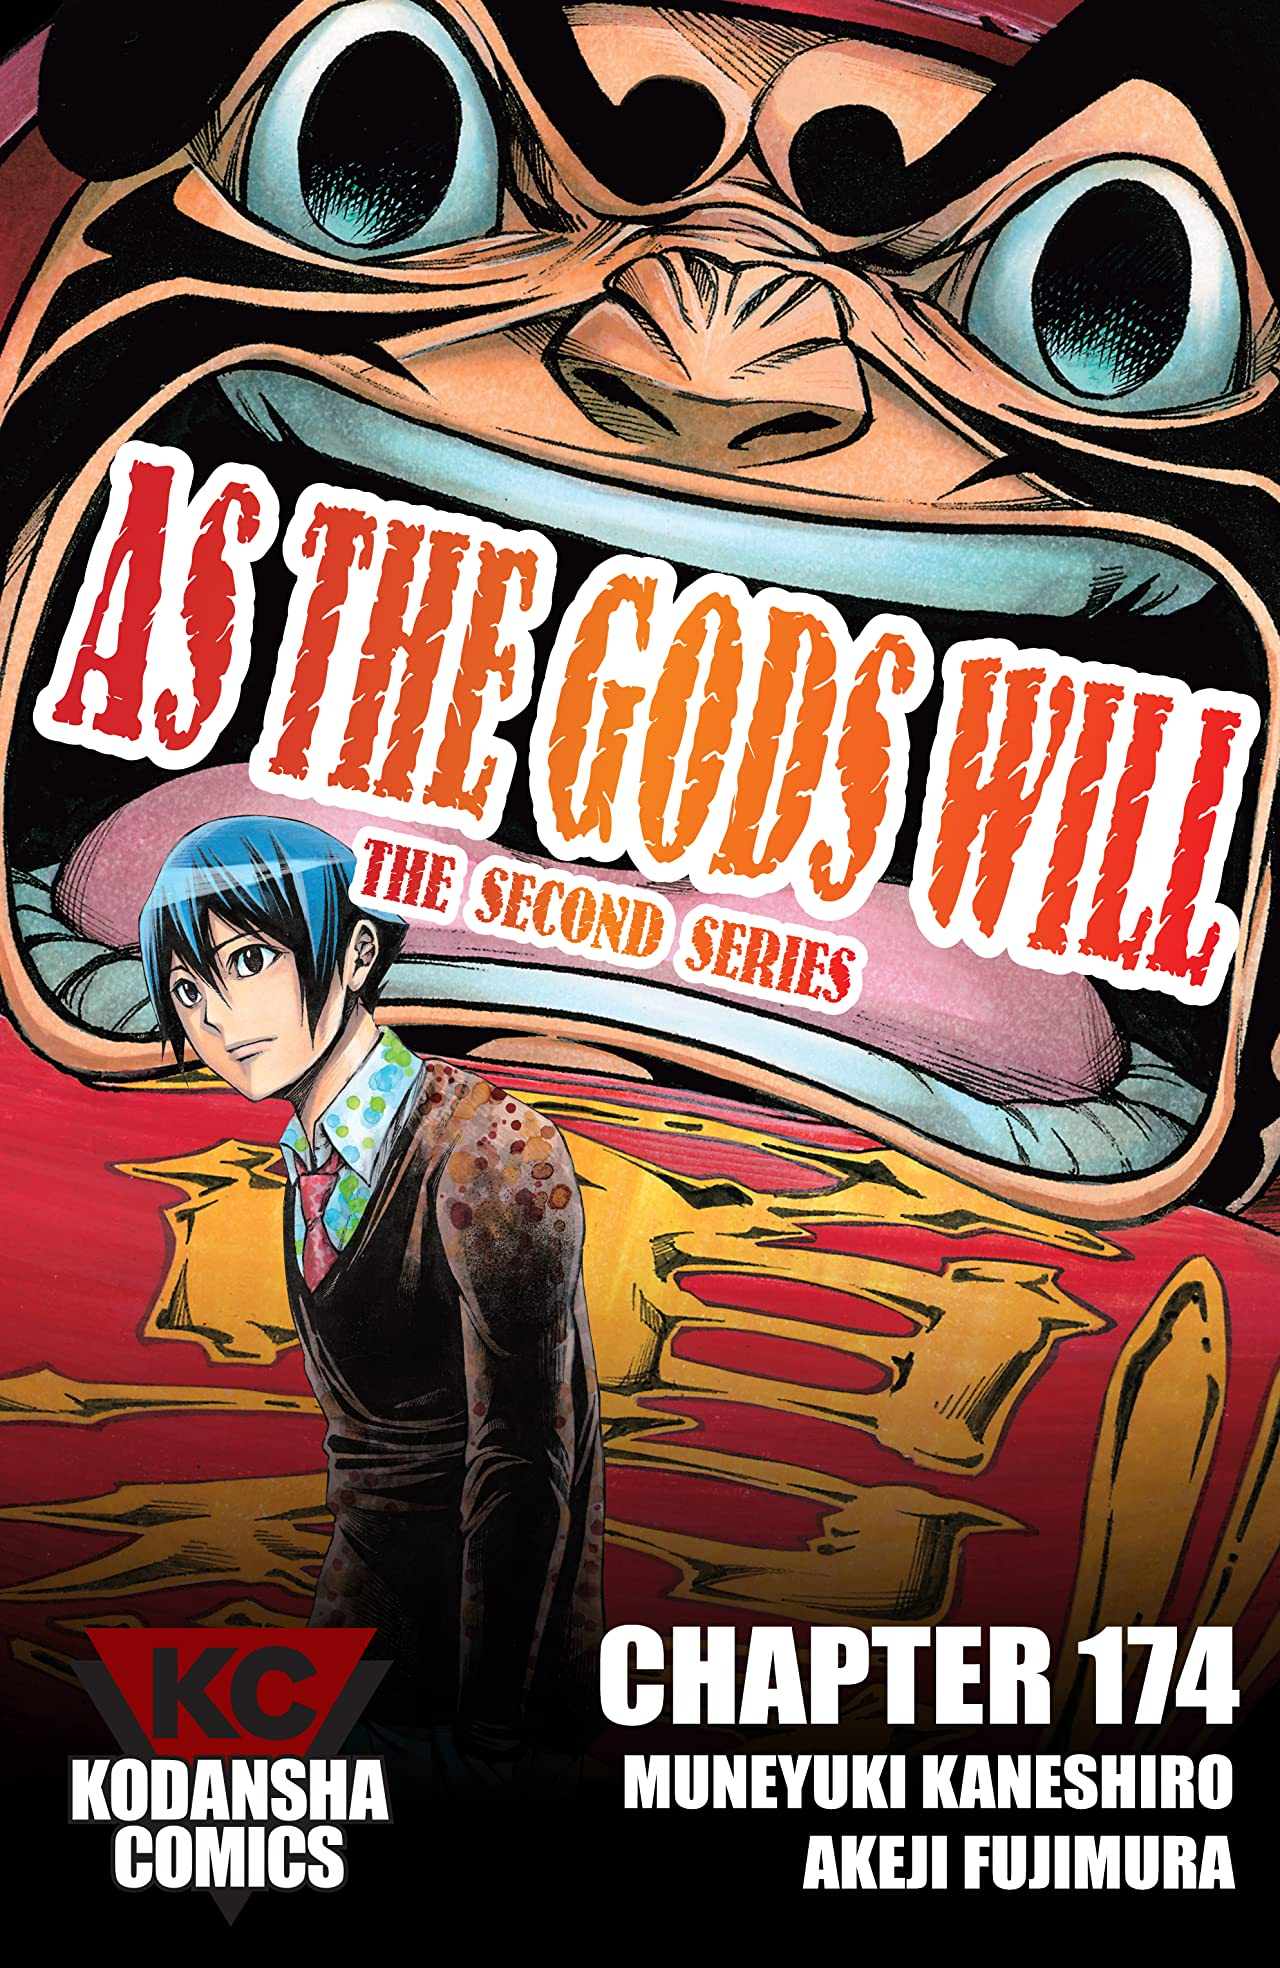 As The Gods Will: The Second Series #174